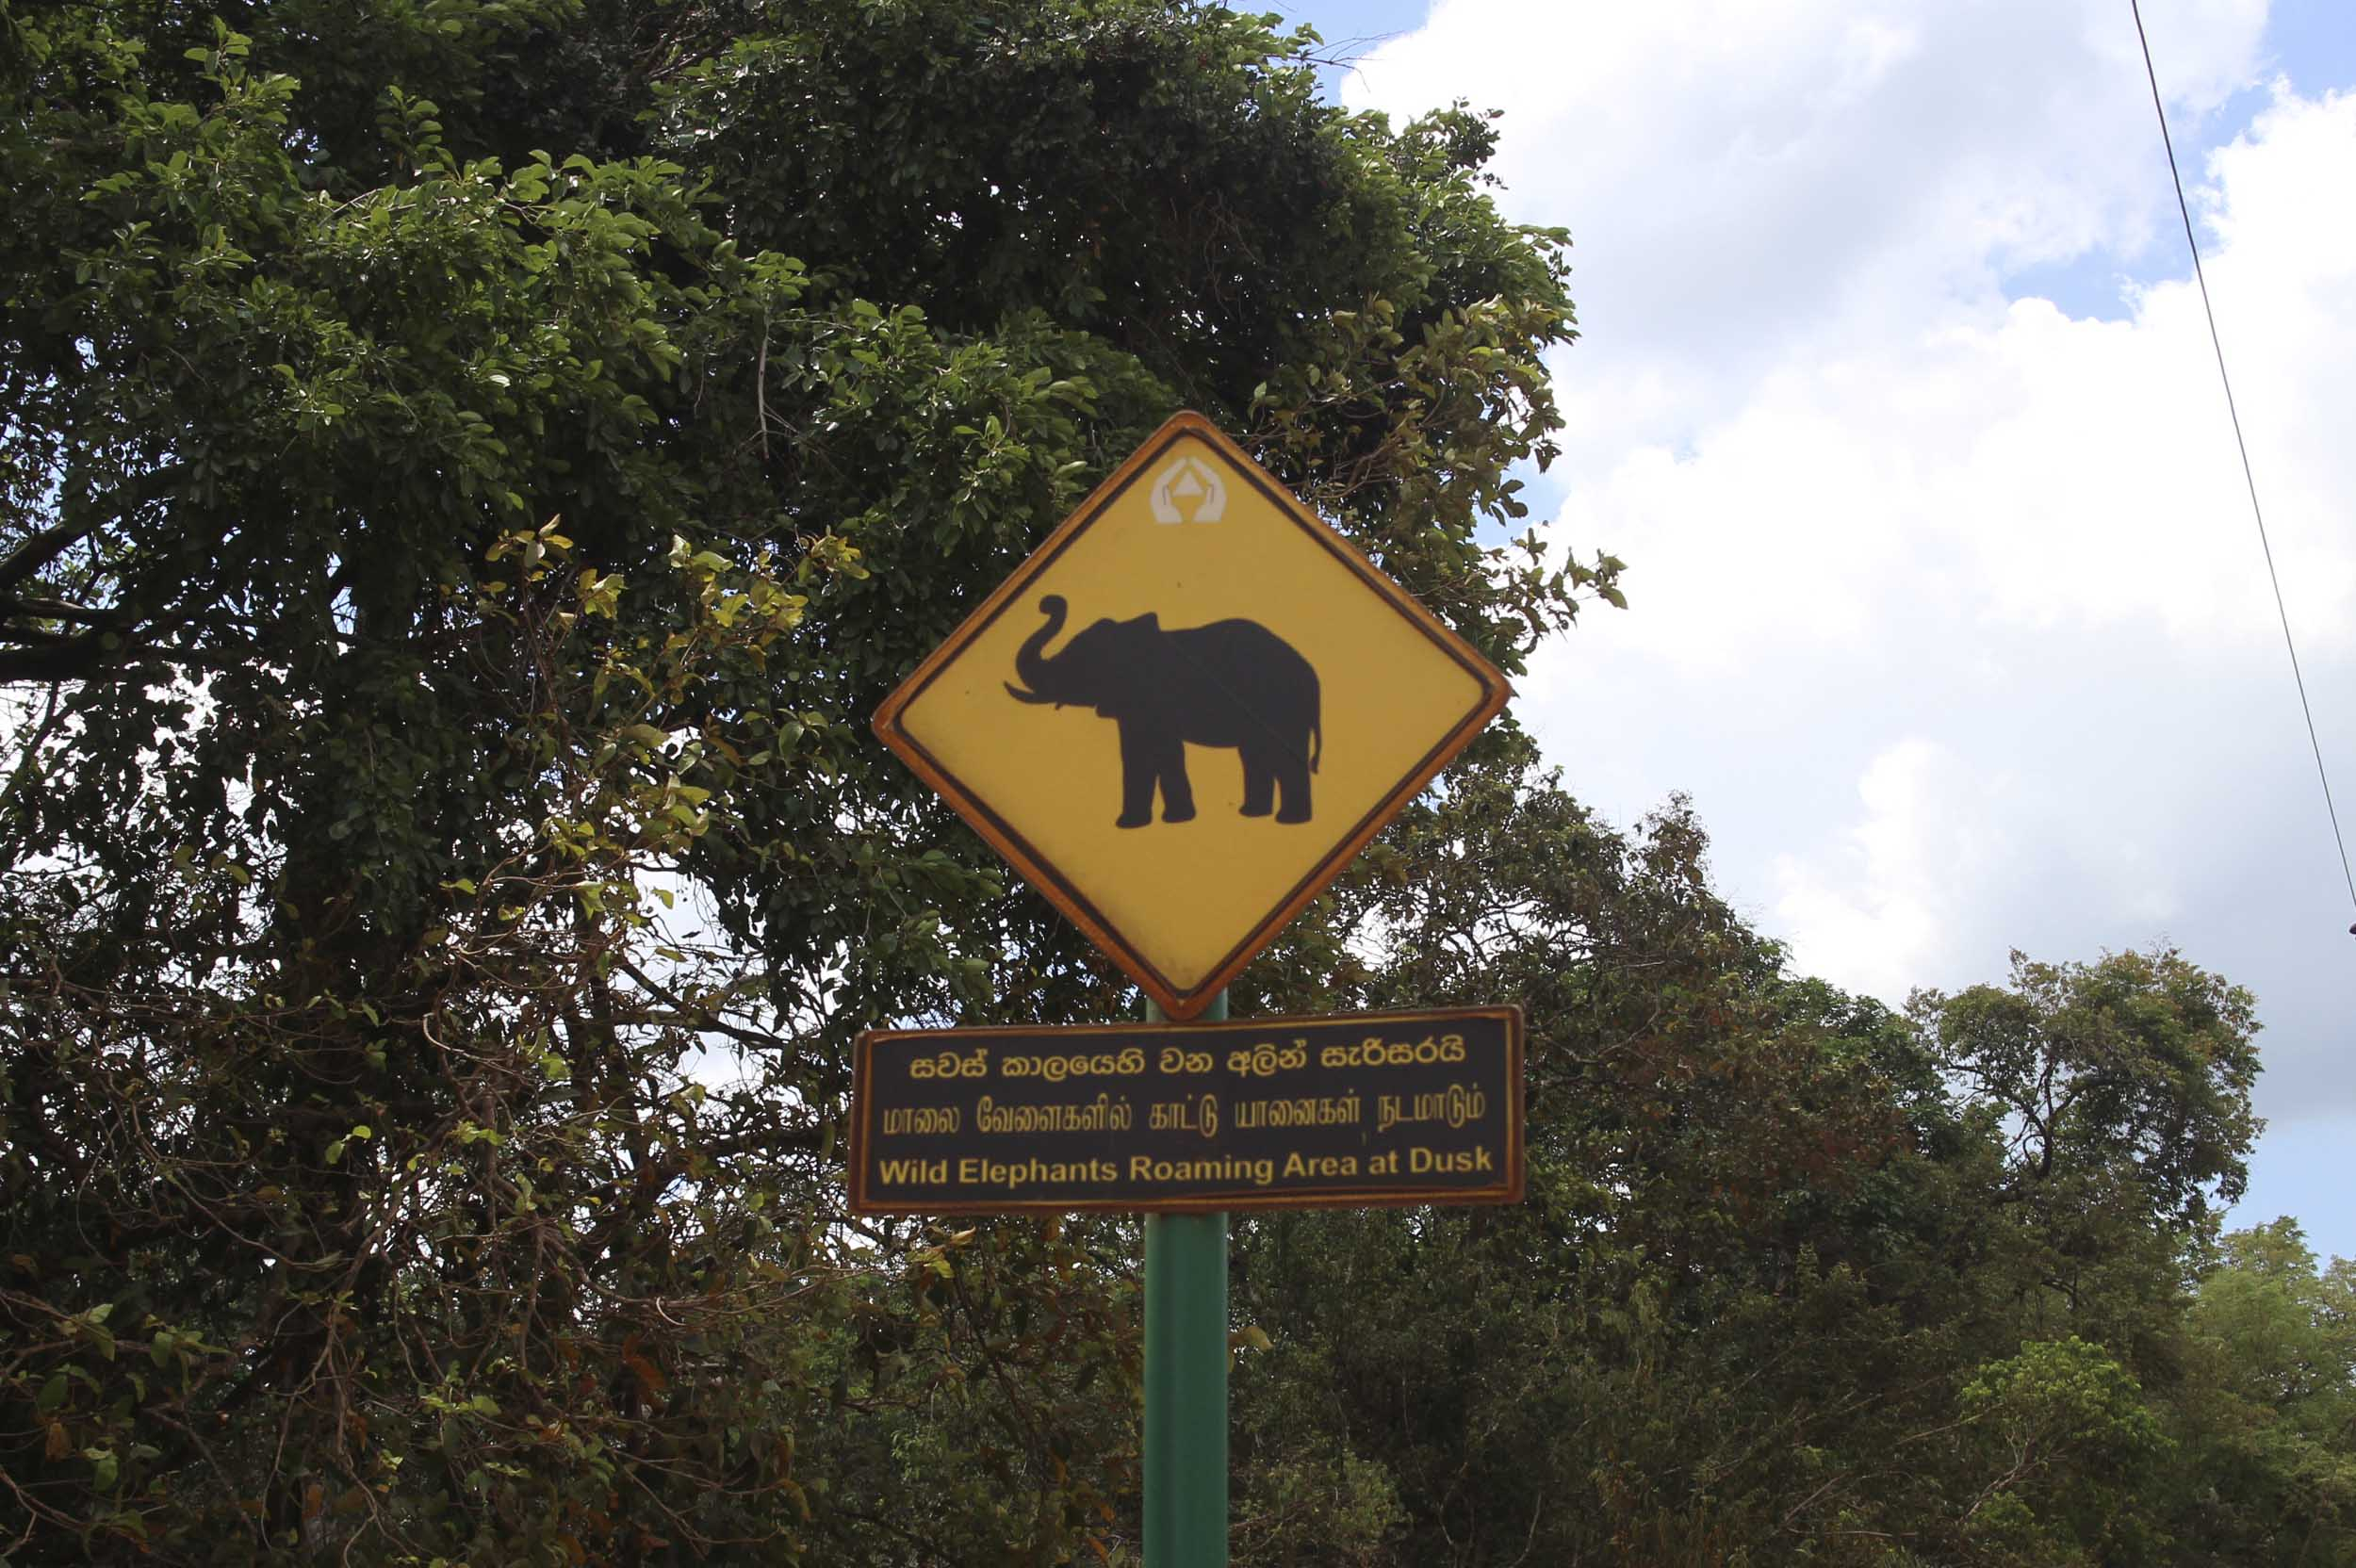 I figured if there were signs saying they were 'Wild Elephants' around, they must be around somewhere?